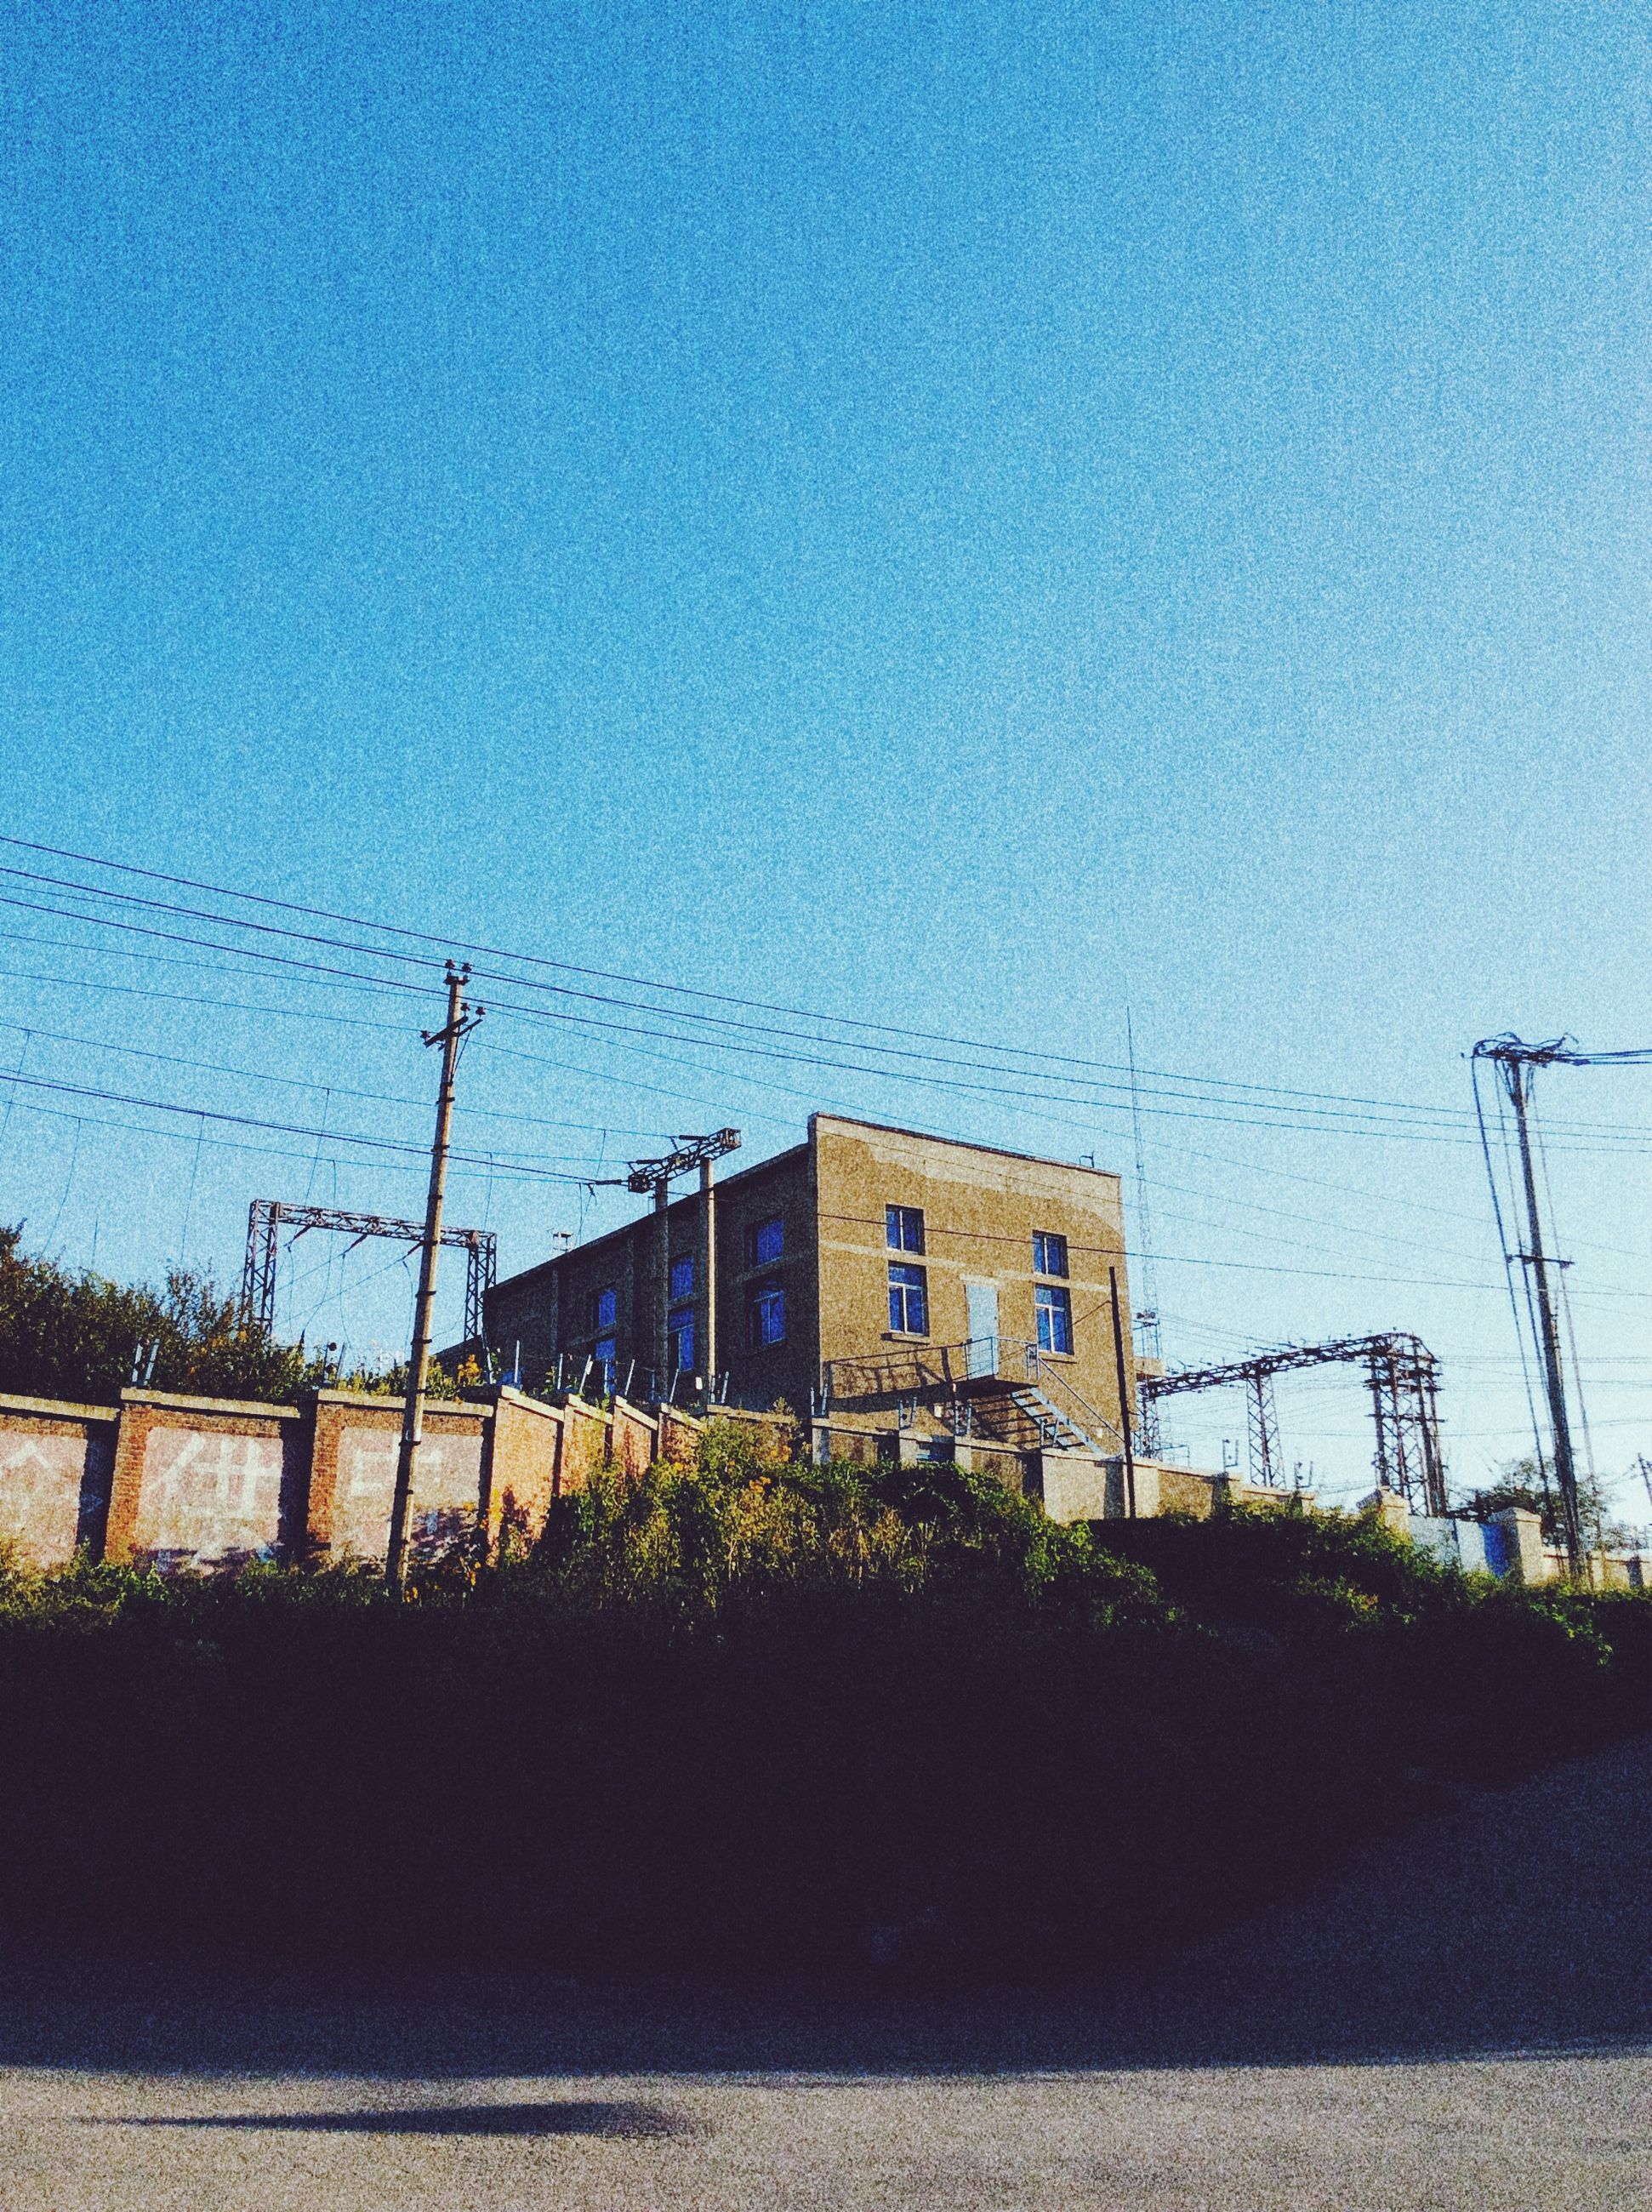 building exterior, built structure, architecture, blue, power line, clear sky, electricity pylon, house, copy space, sky, fuel and power generation, electricity, power supply, cable, low angle view, day, outdoors, no people, residential structure, field